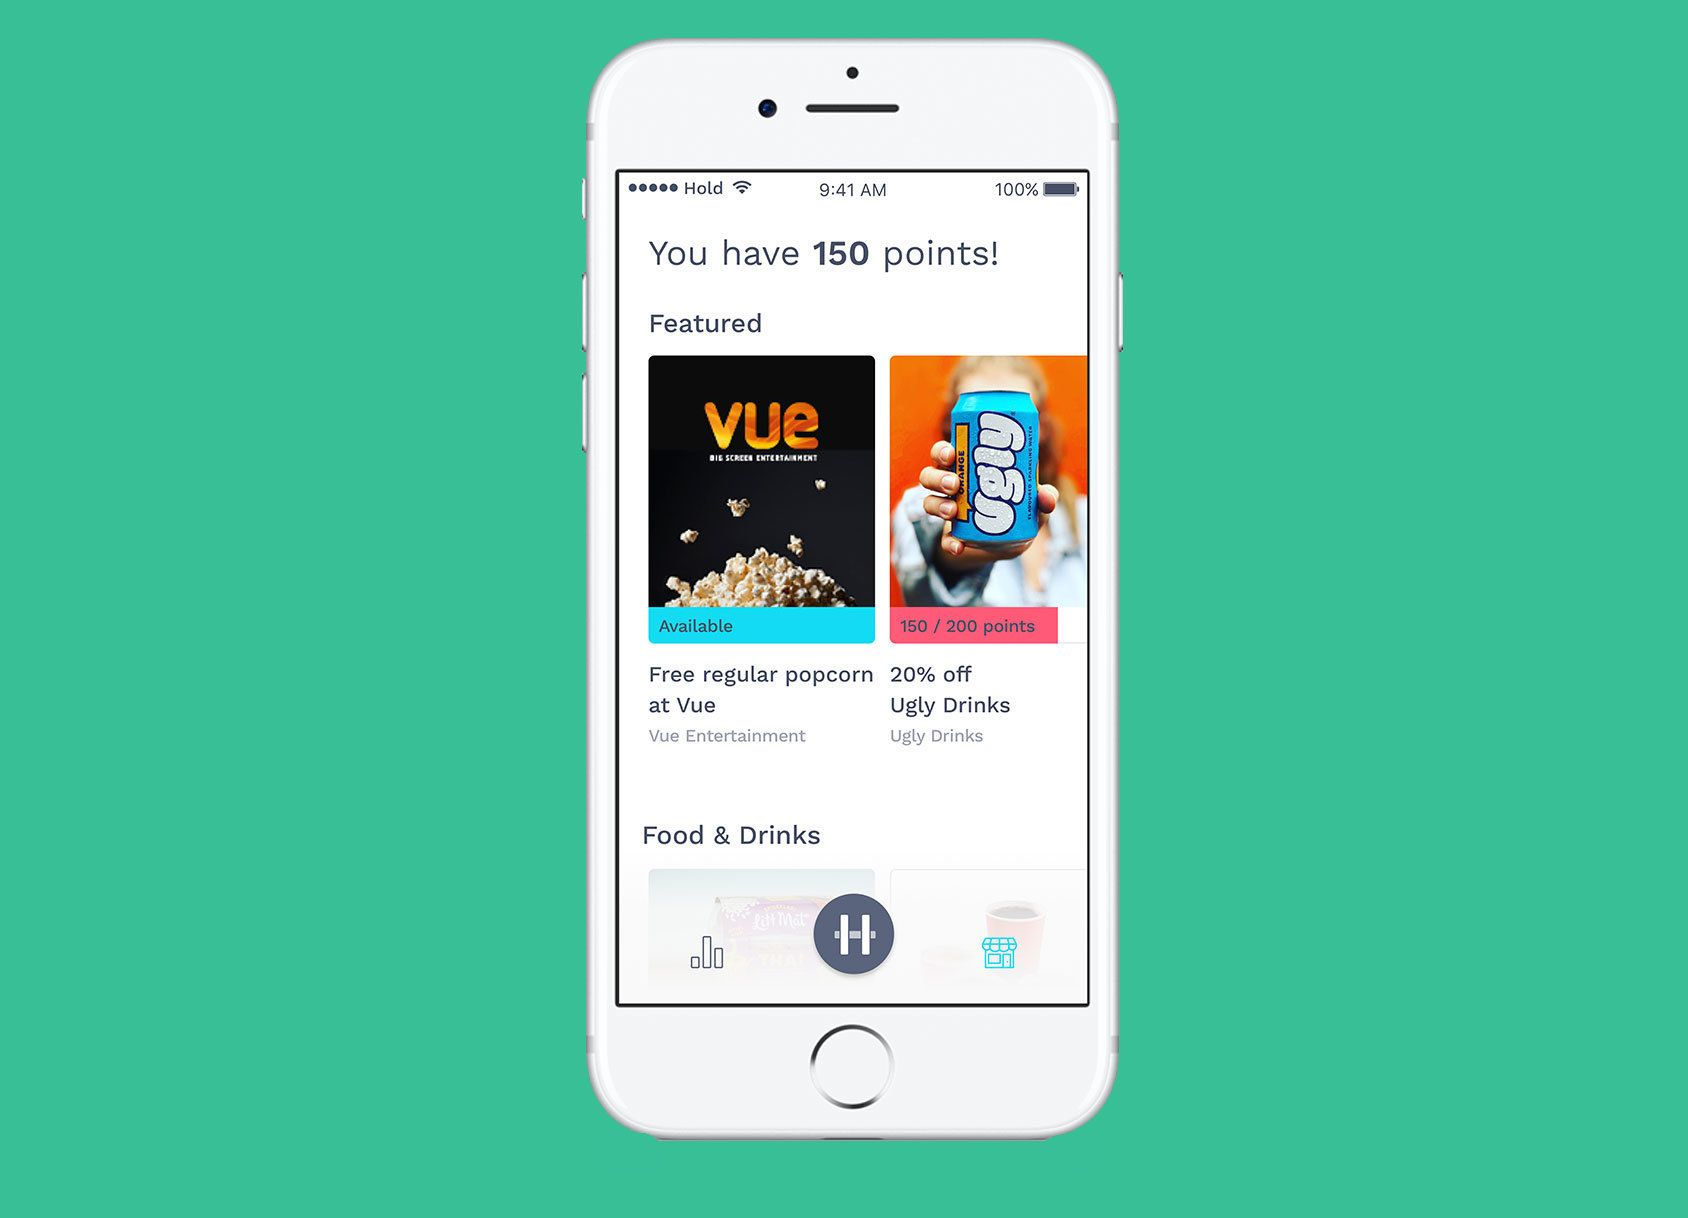 This App Helps Cure Your Phone Addiction By Giving You Free